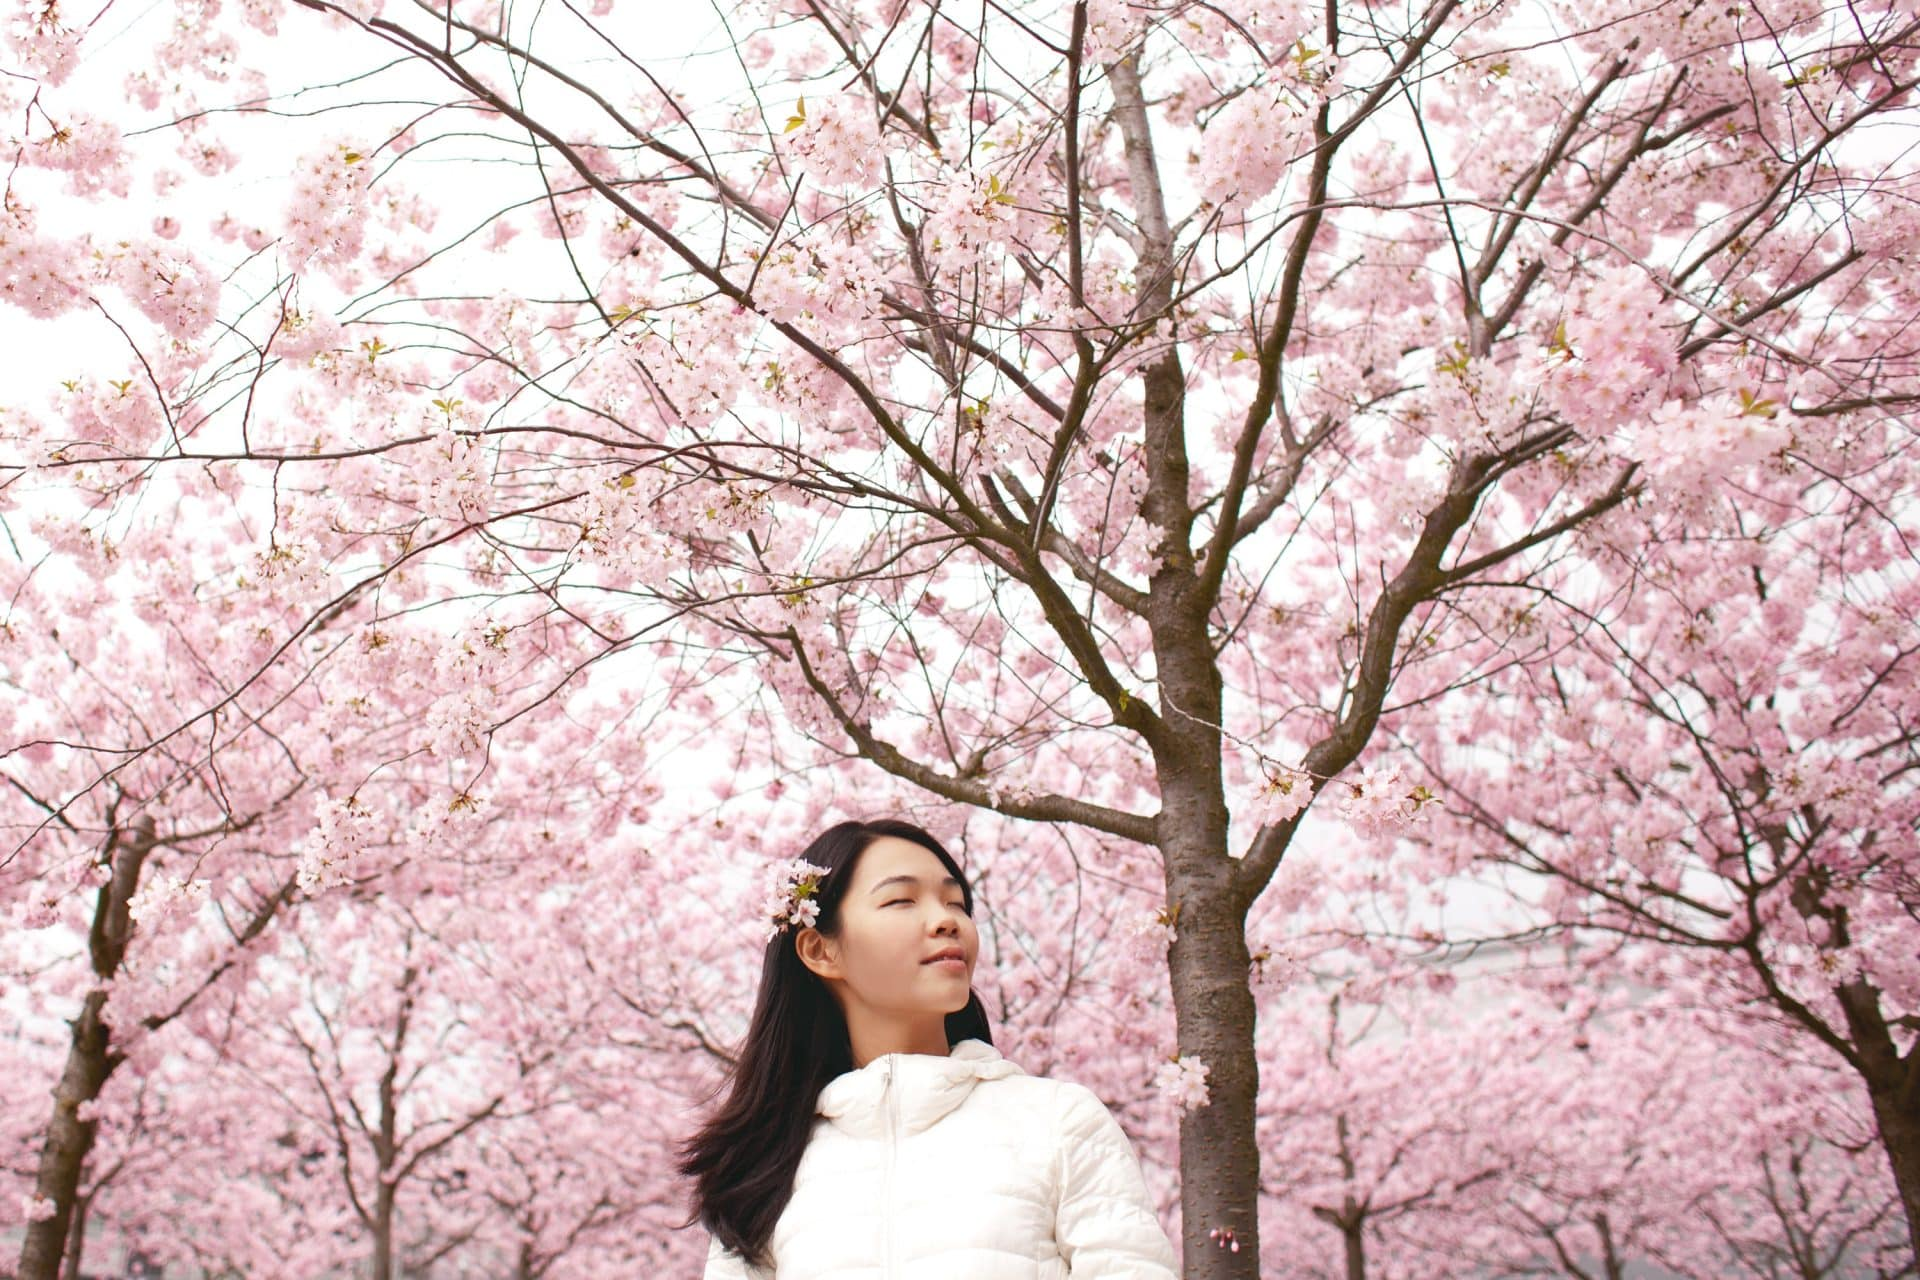 cherry blossoms in Japan 2020